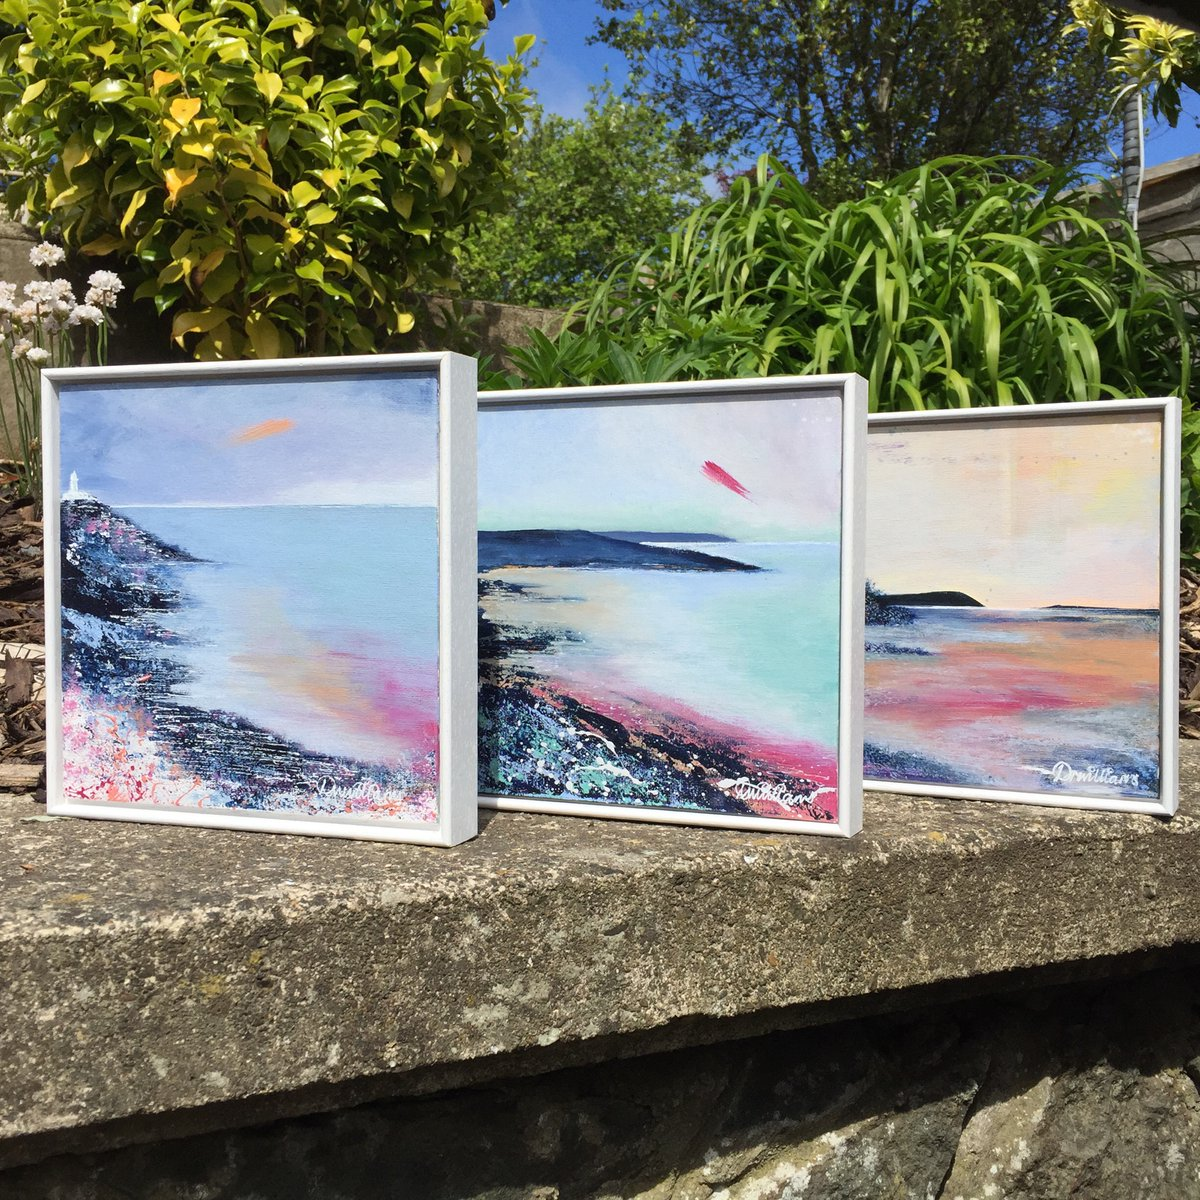 This new collection of seascapes if filled with dolly mixture, ice cream sundae, candy floss sort of colour palette and I love them! Which one is your favourite? #strumbleheadlighthouse #marloessands #parrog #newportpembs #westisbest #wales #visitpembrokeshire #coastalliving https://t.co/E7tuDiCudM